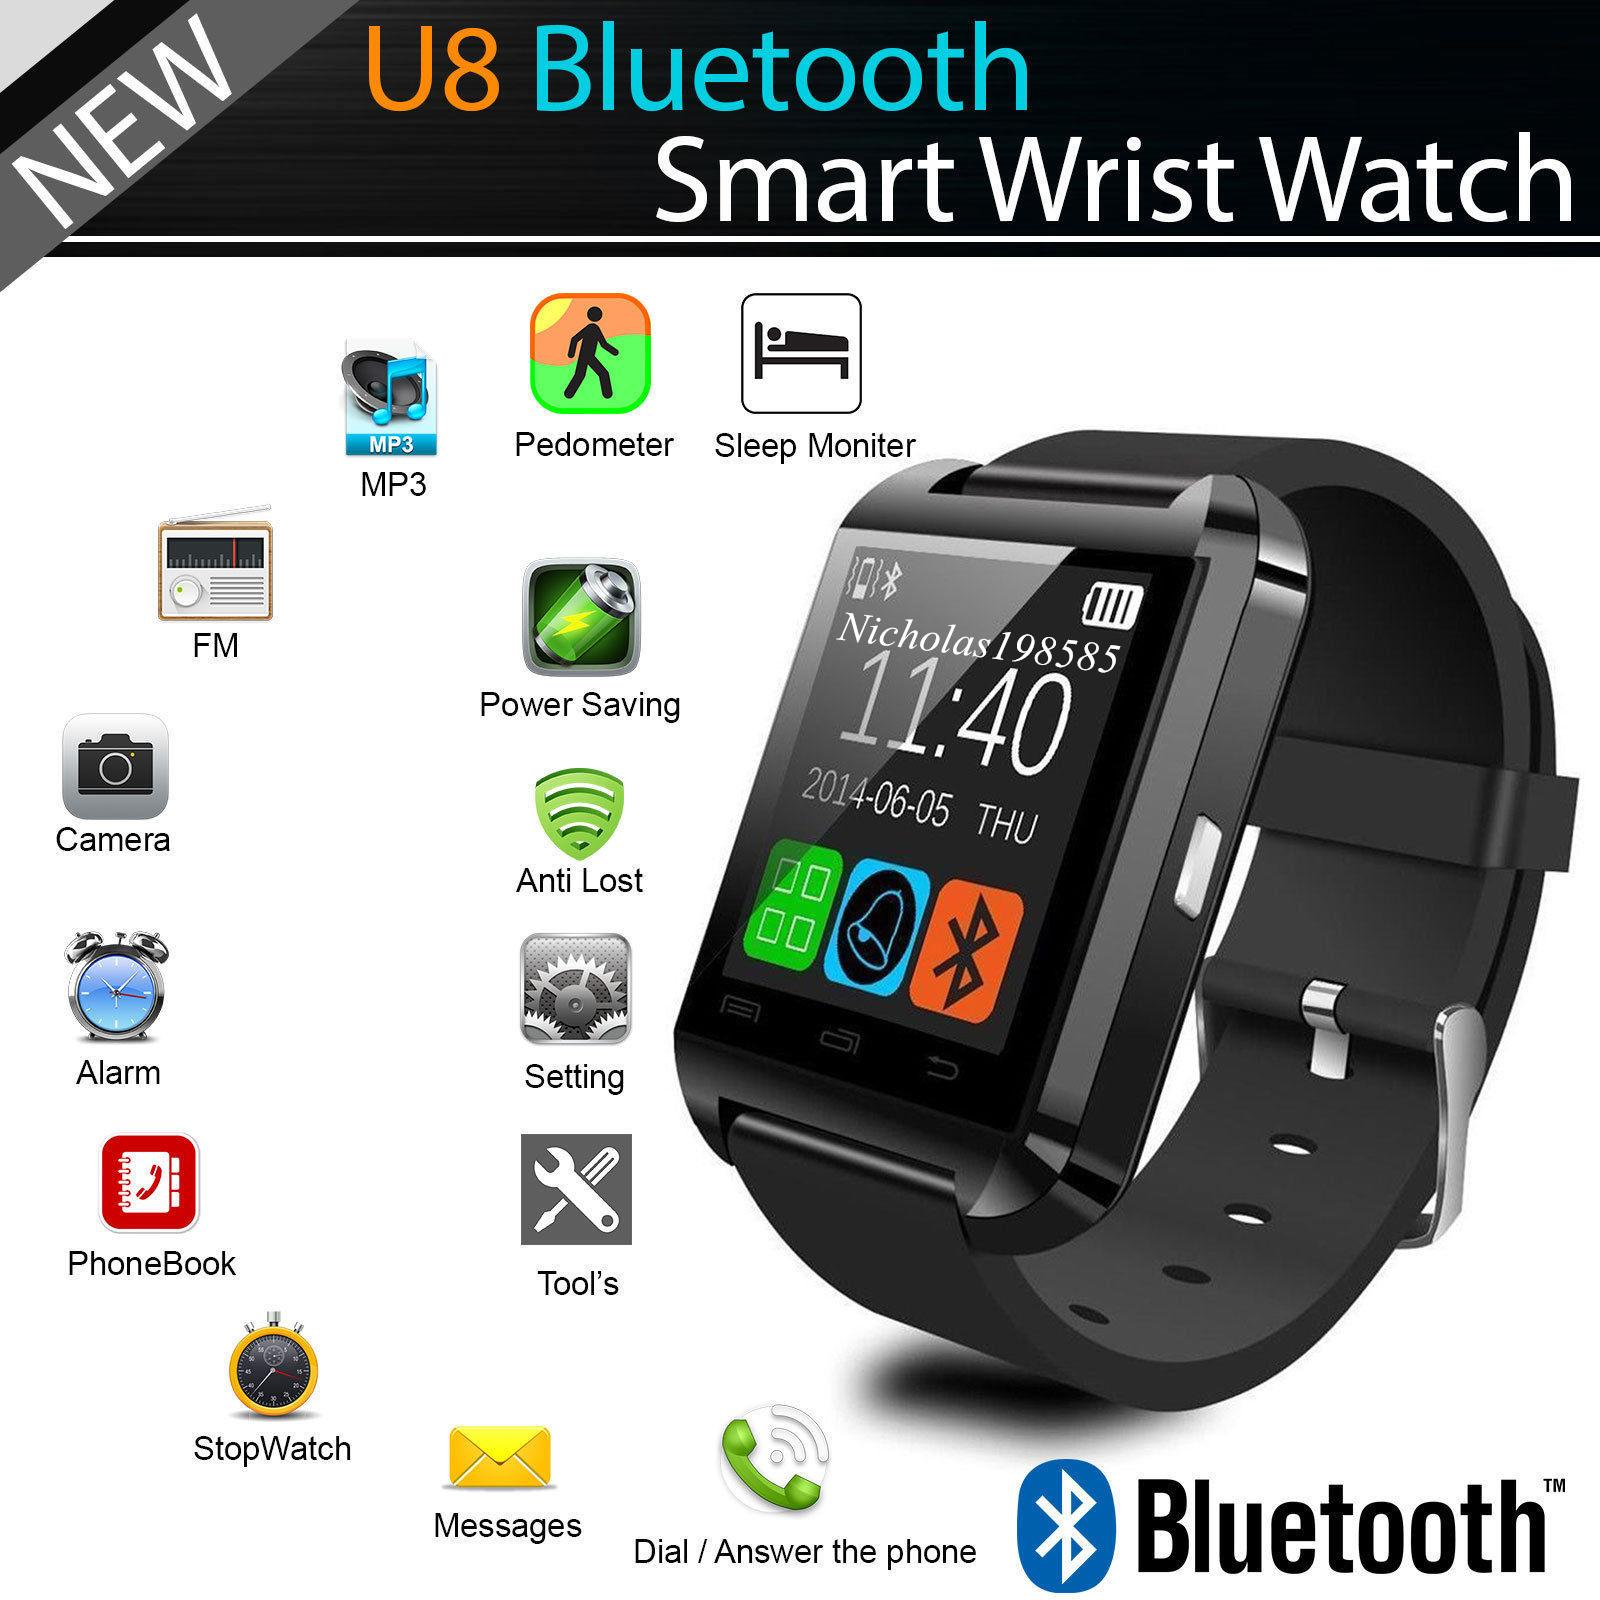 bloomberg features t apple need watch one want phone watches i ll you but review don news